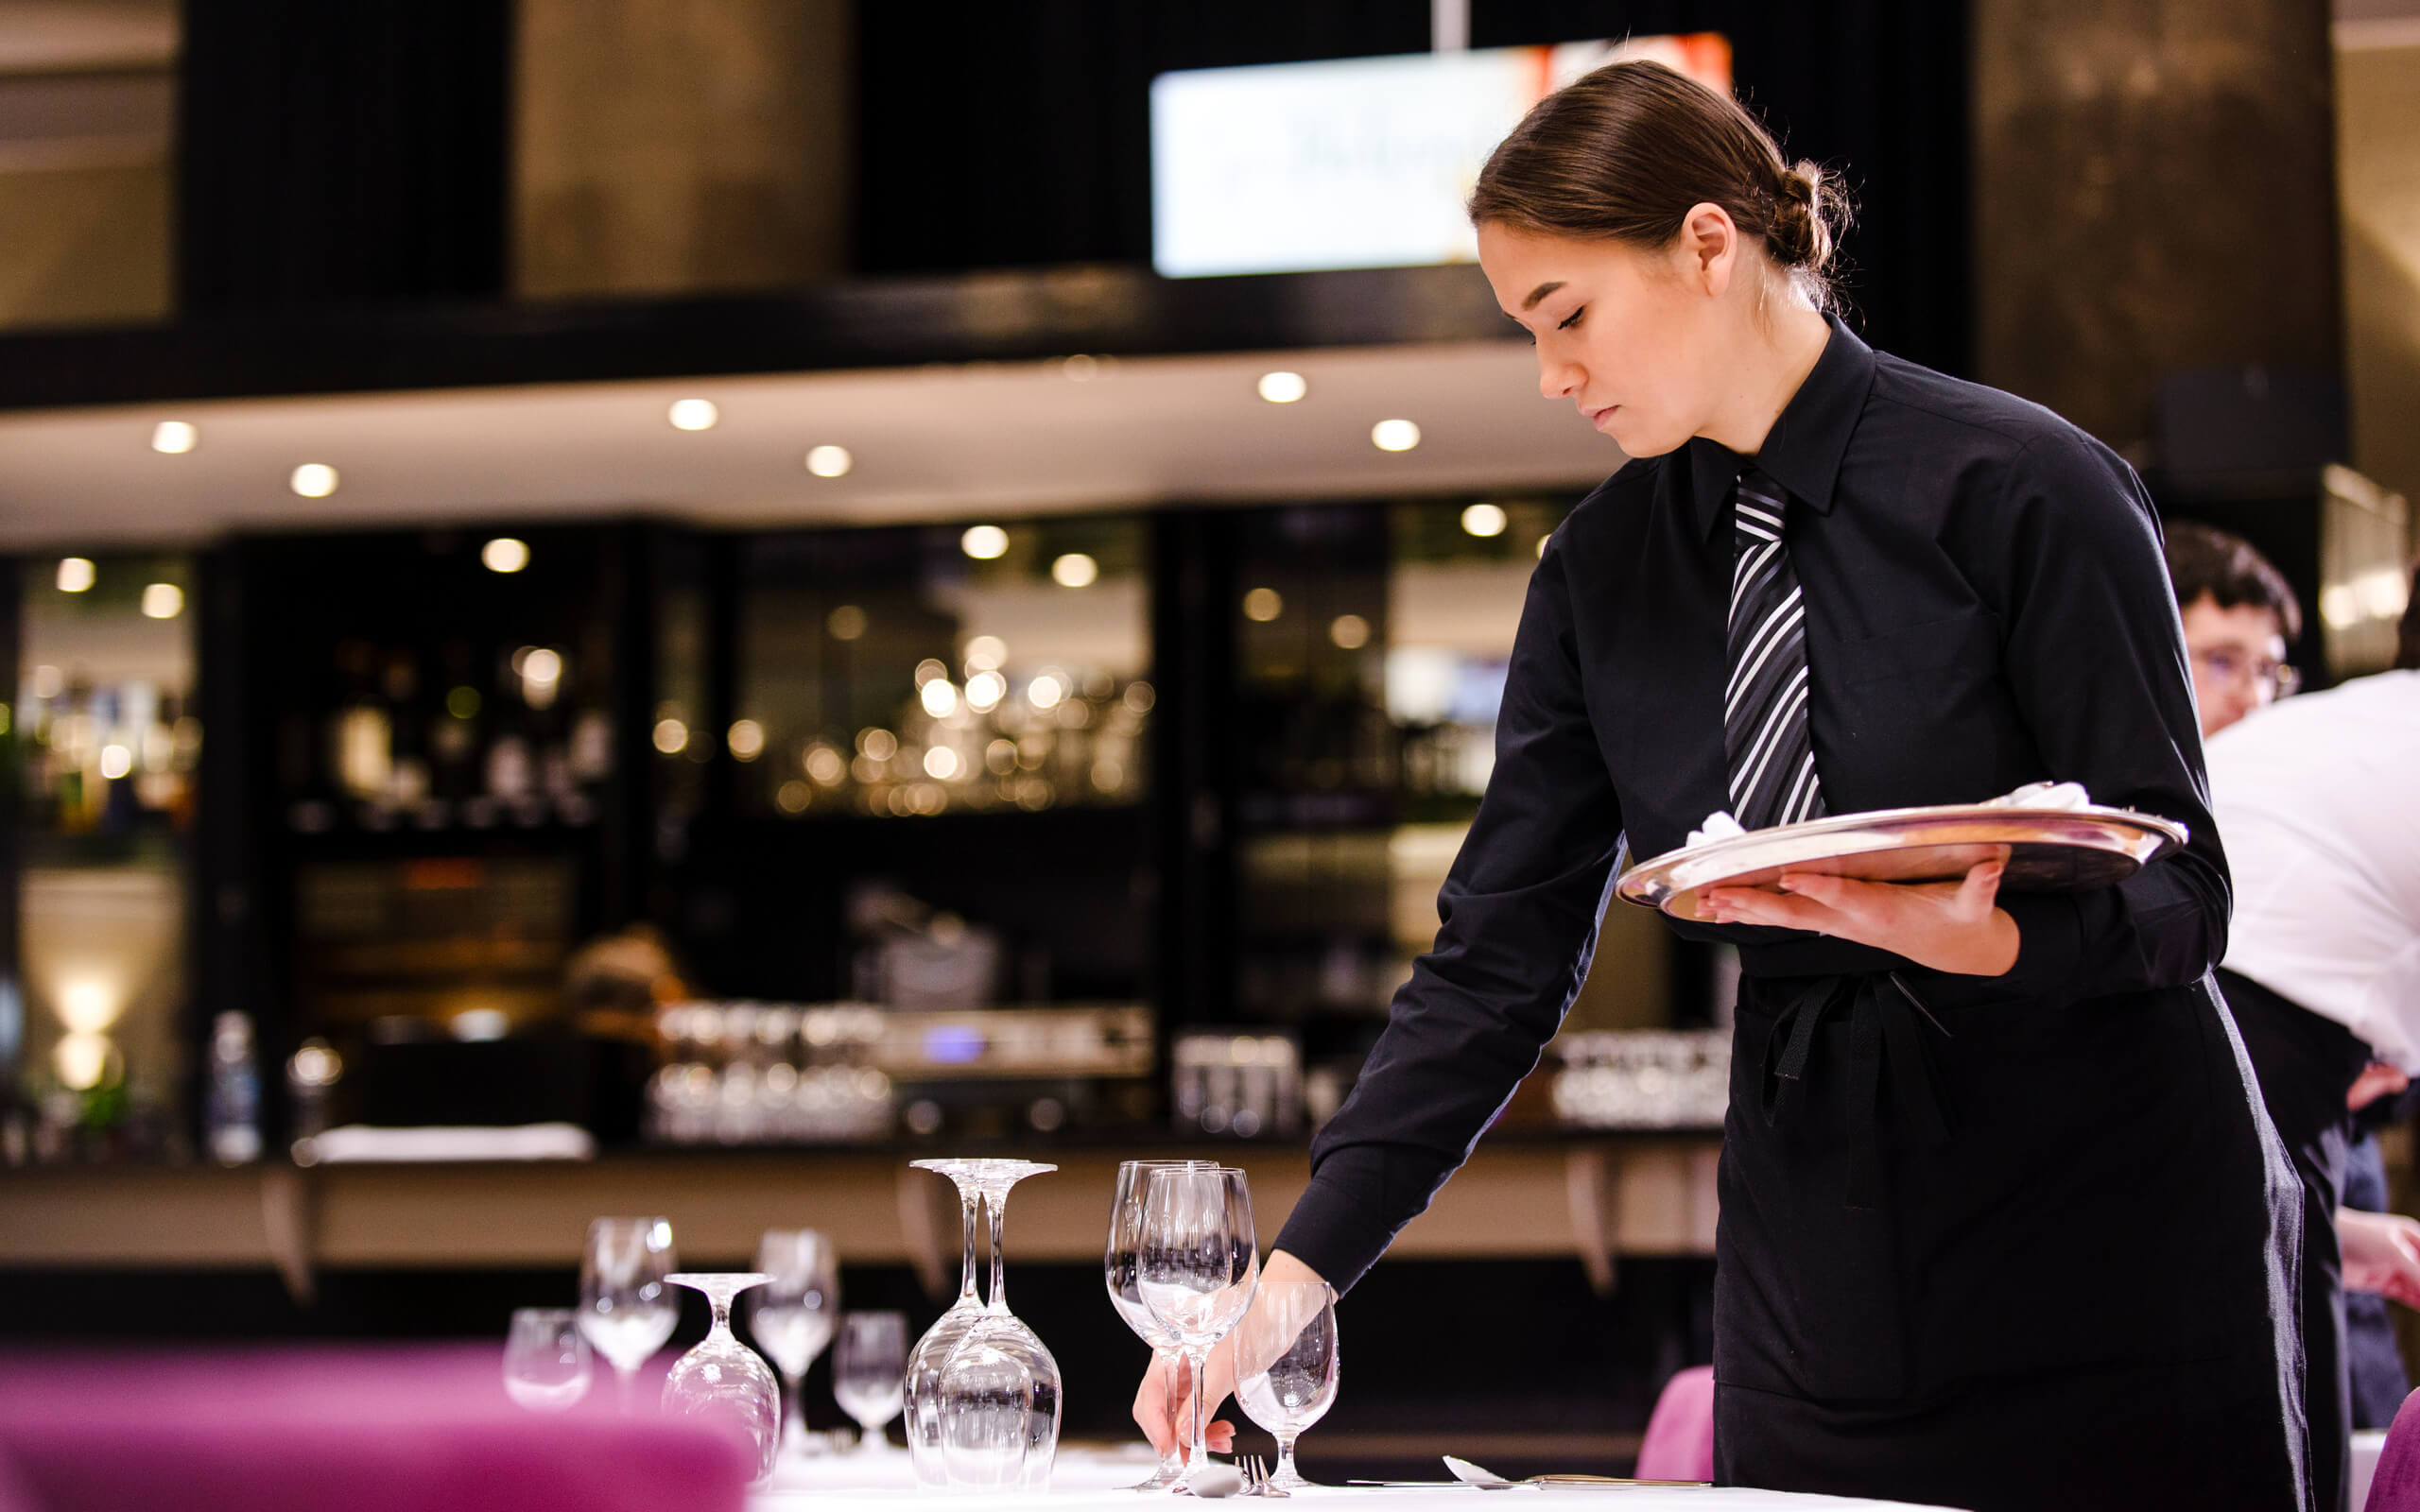 Young female laying table in restaurant